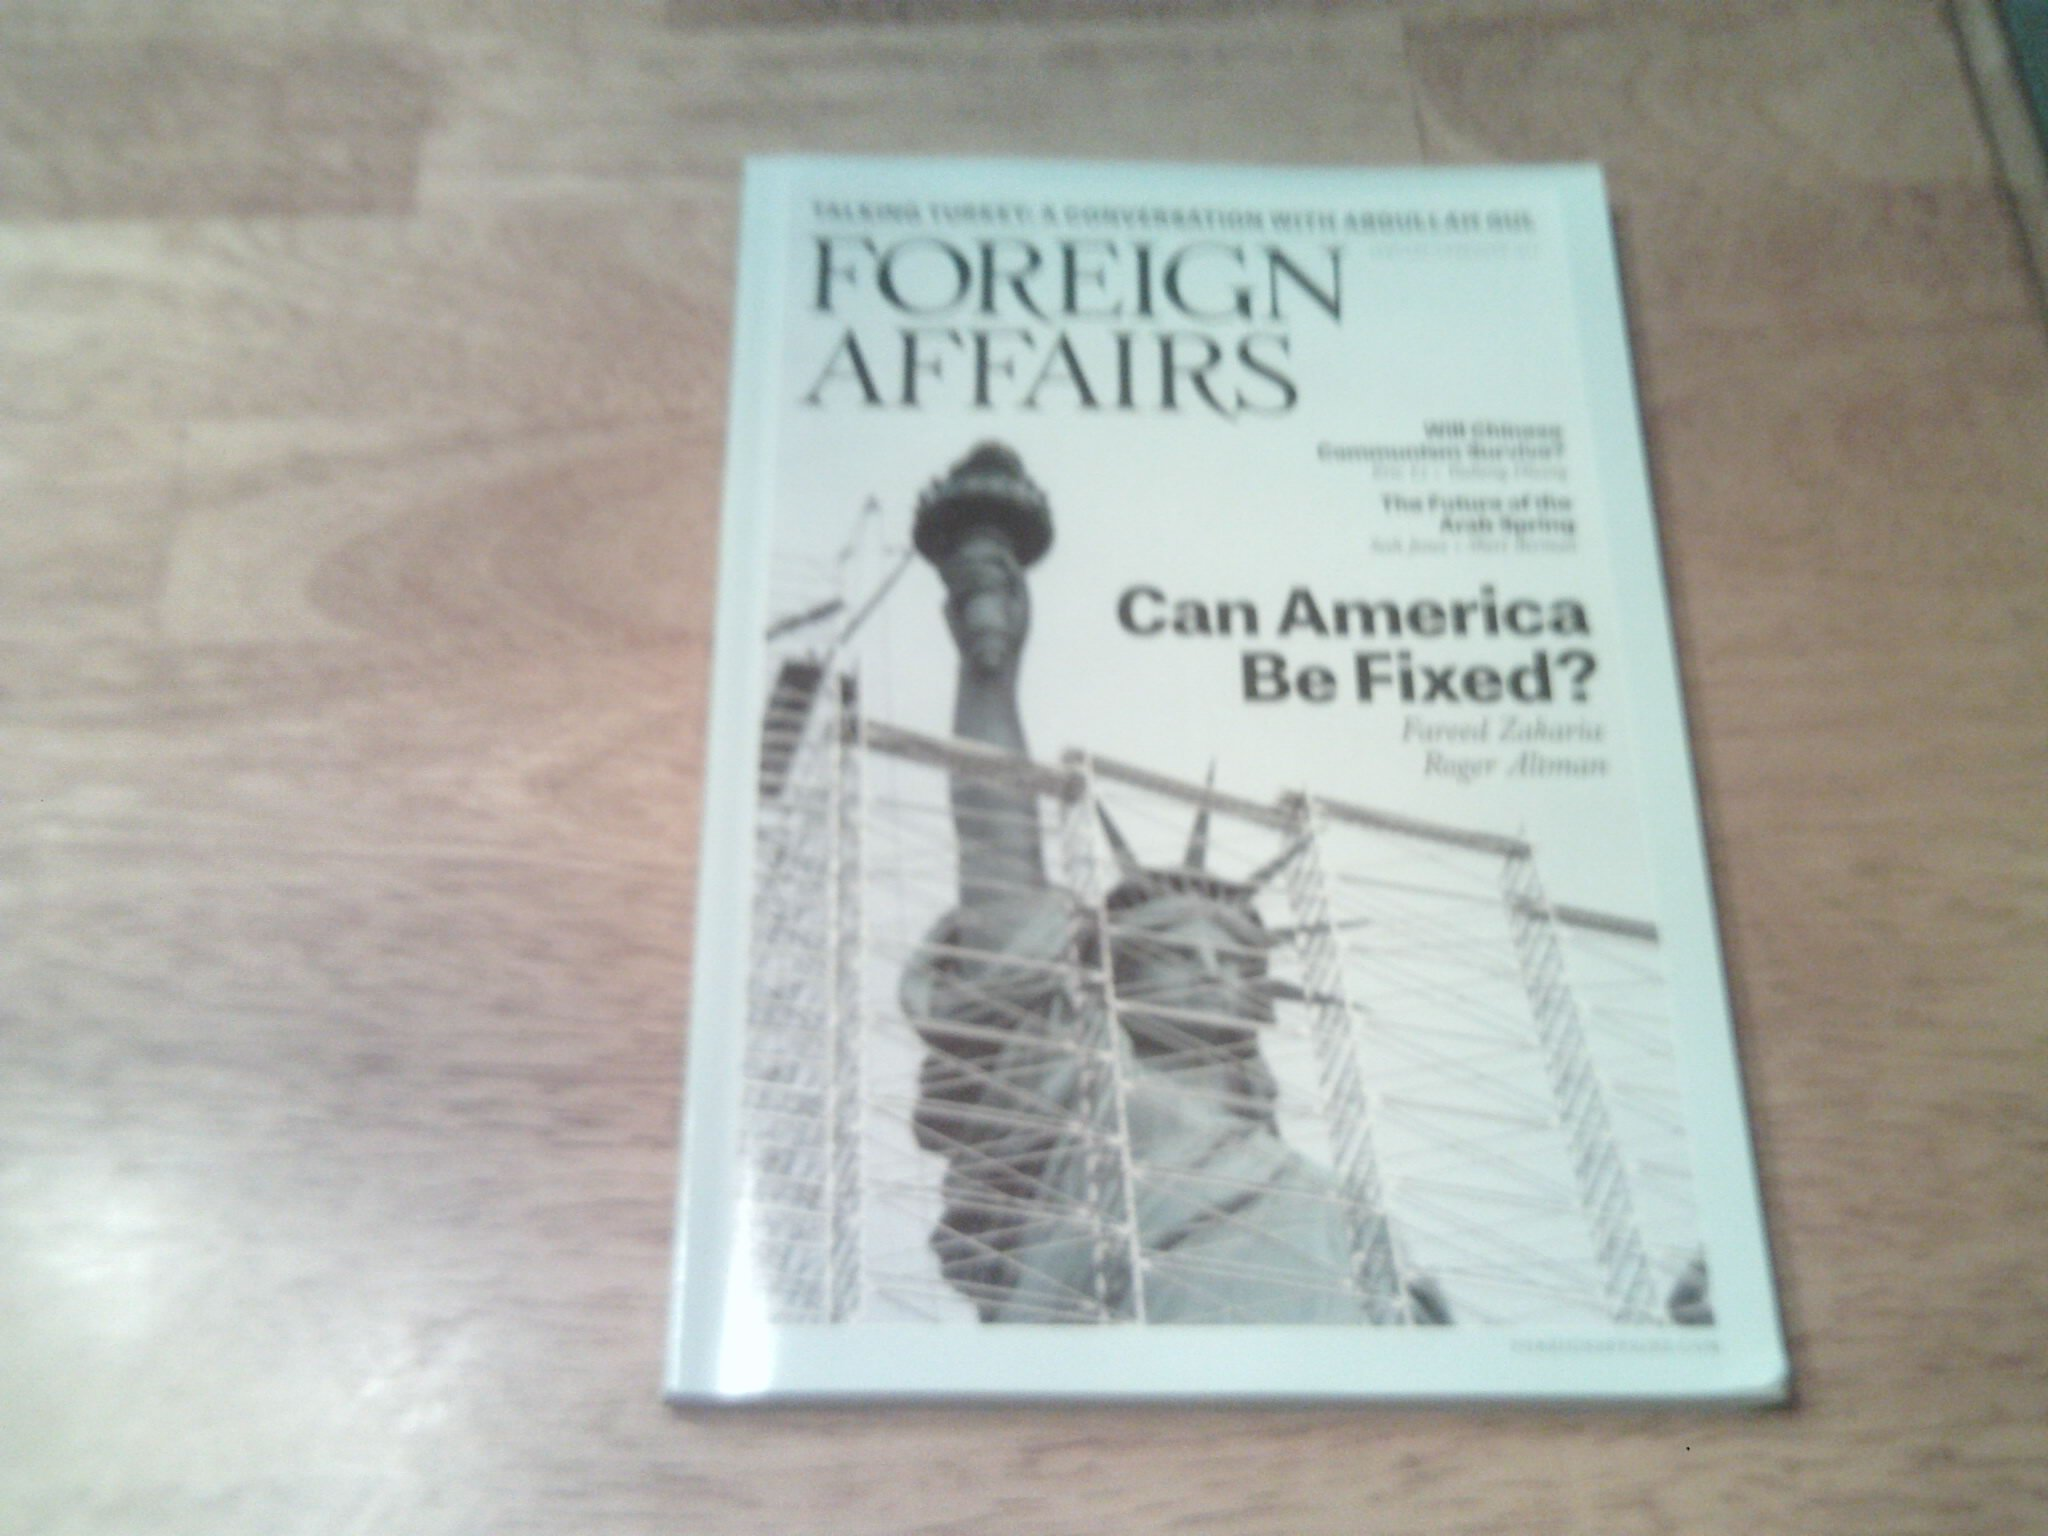 Foreign Affairs 2013 January/february - Can America Be Fixed? By Fareed Zakaria & Roger Altnab PDF